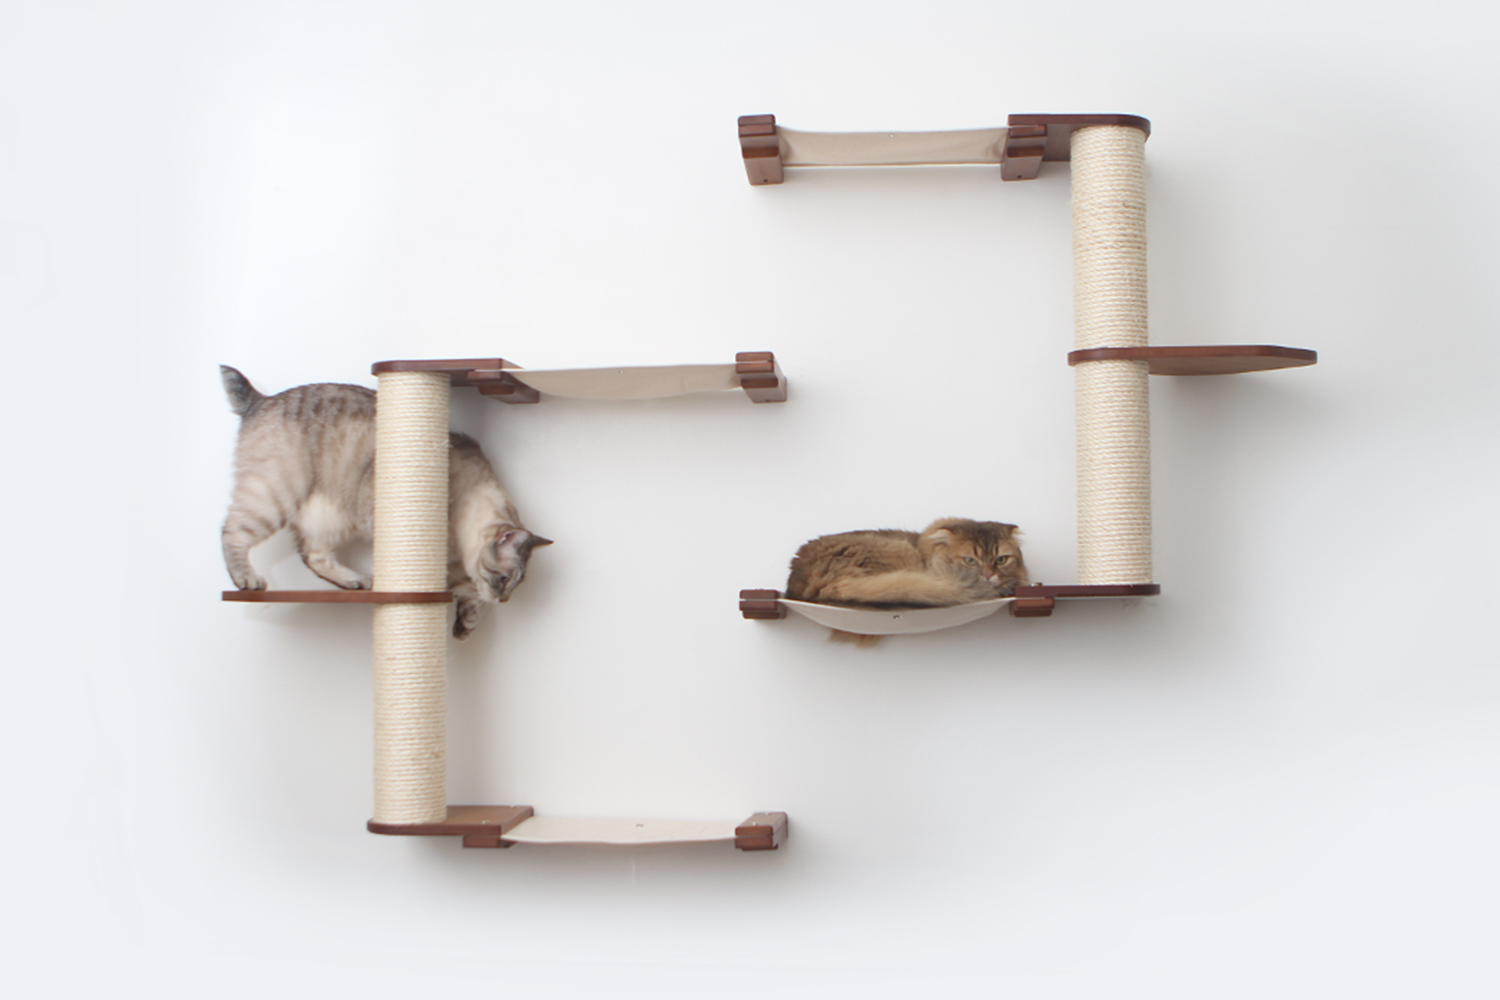 catacombs complex wall mounted cat furniture with angry brown cat and gray tabby